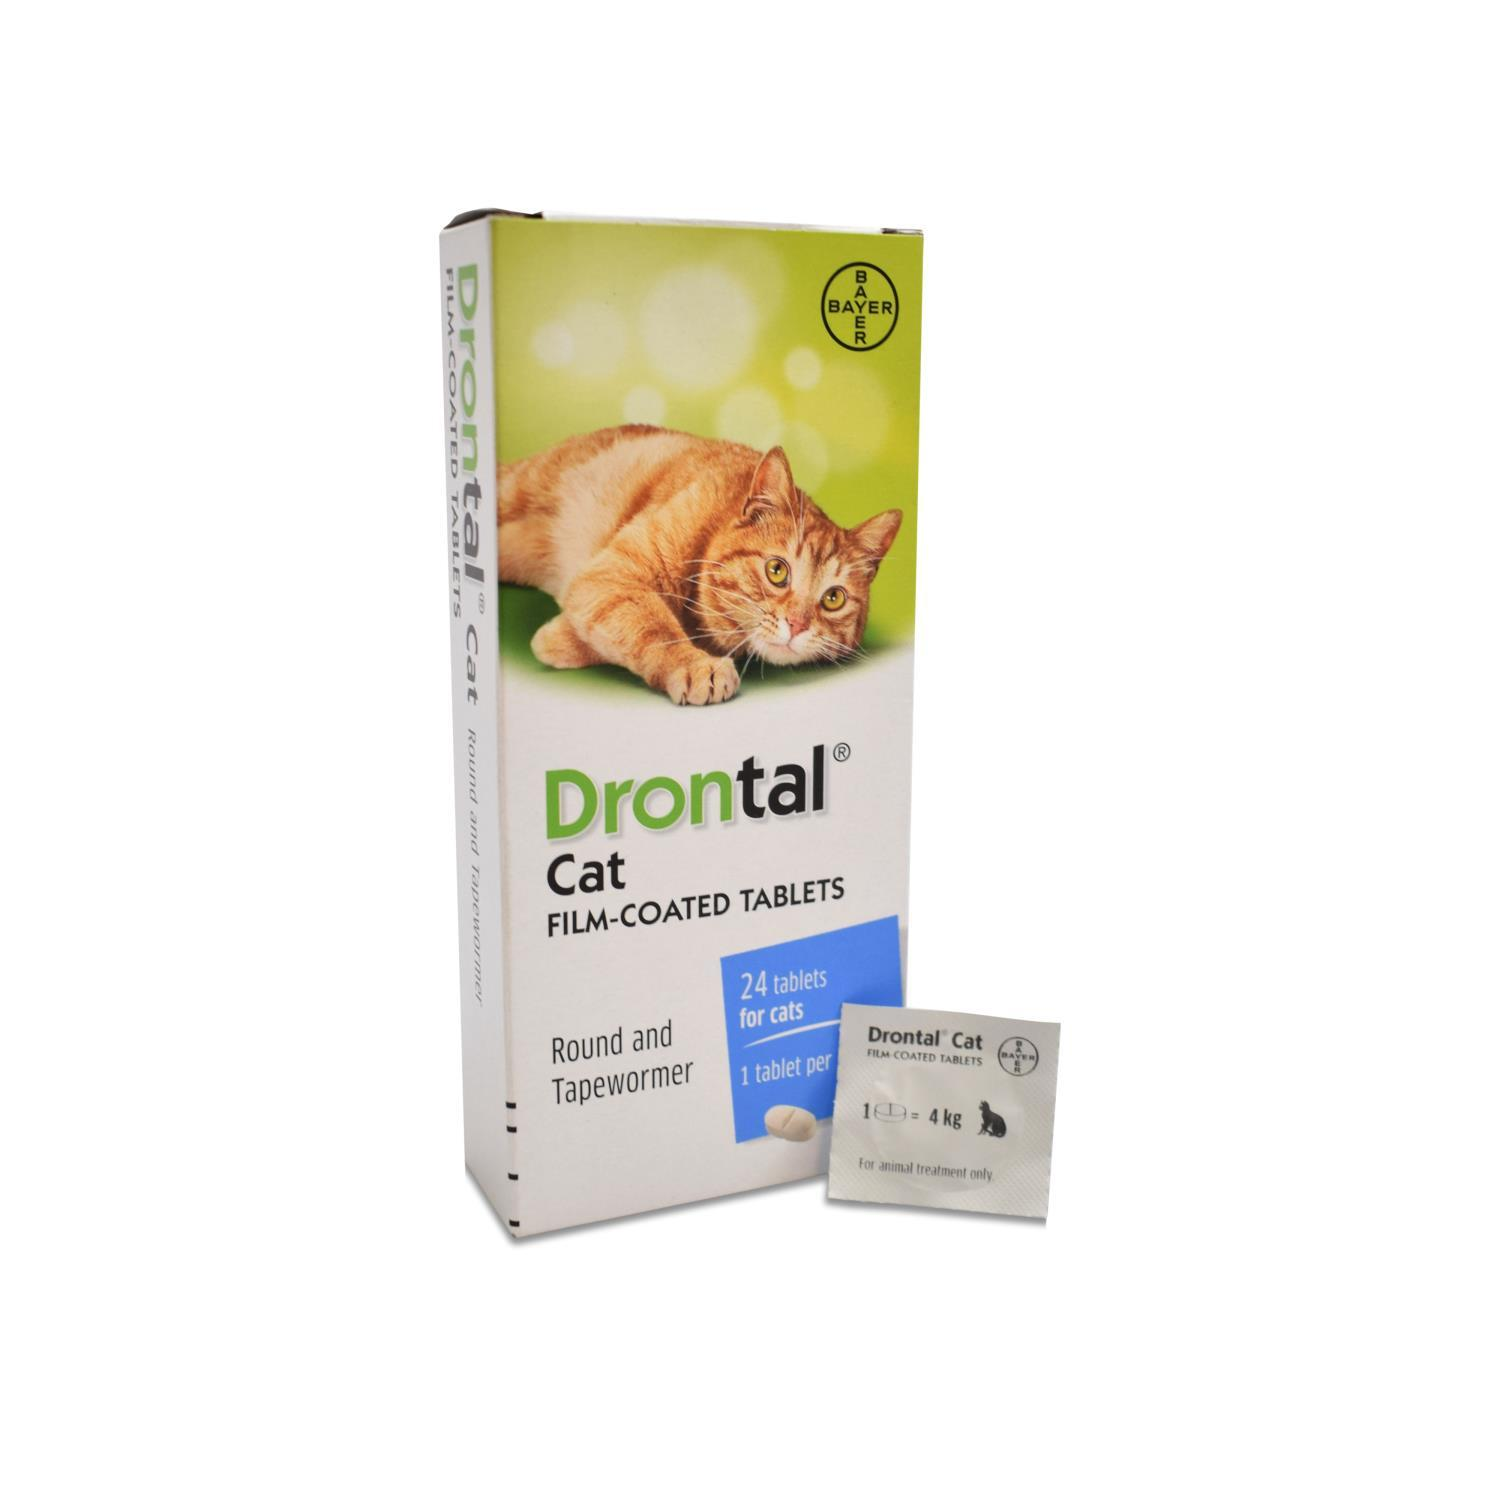 Buy Drontal Cat Wormer Tablet Single from Fane Valley Stores